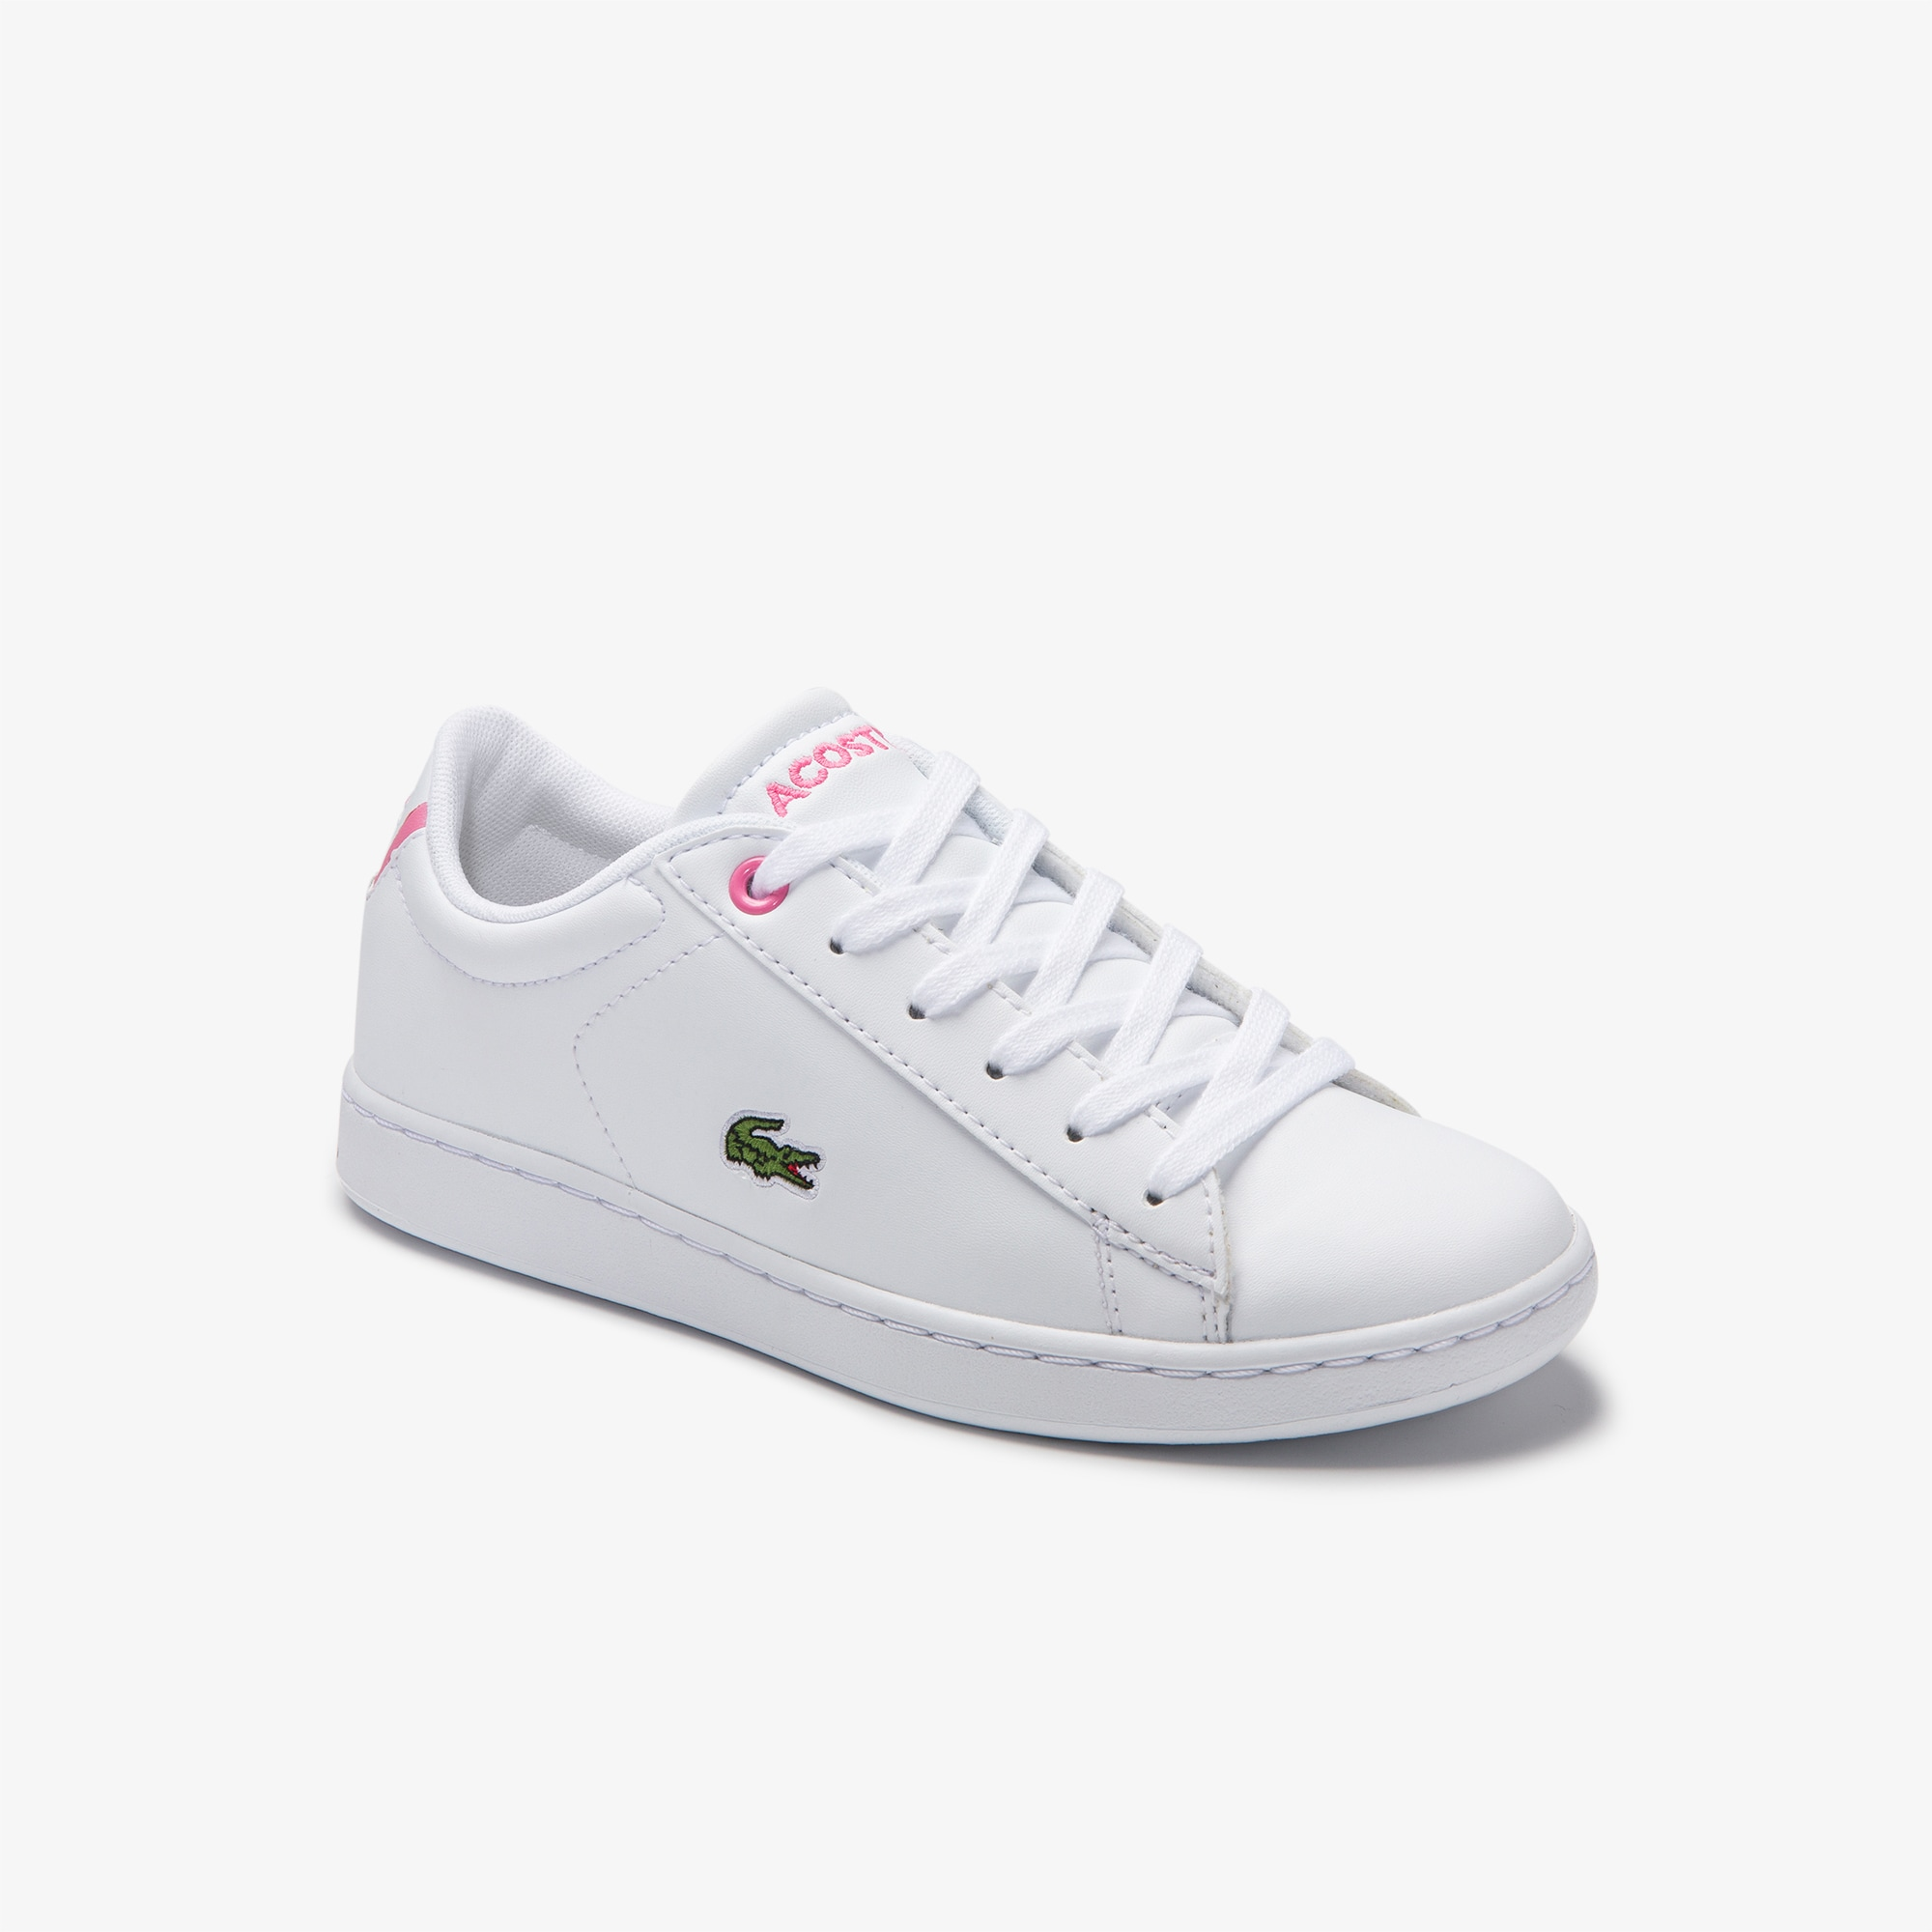 라코스테 칠드런 스니커즈 Lacoste Childrens Carnaby Evo Synthetic Sneakers,WHITE/PINK • B53